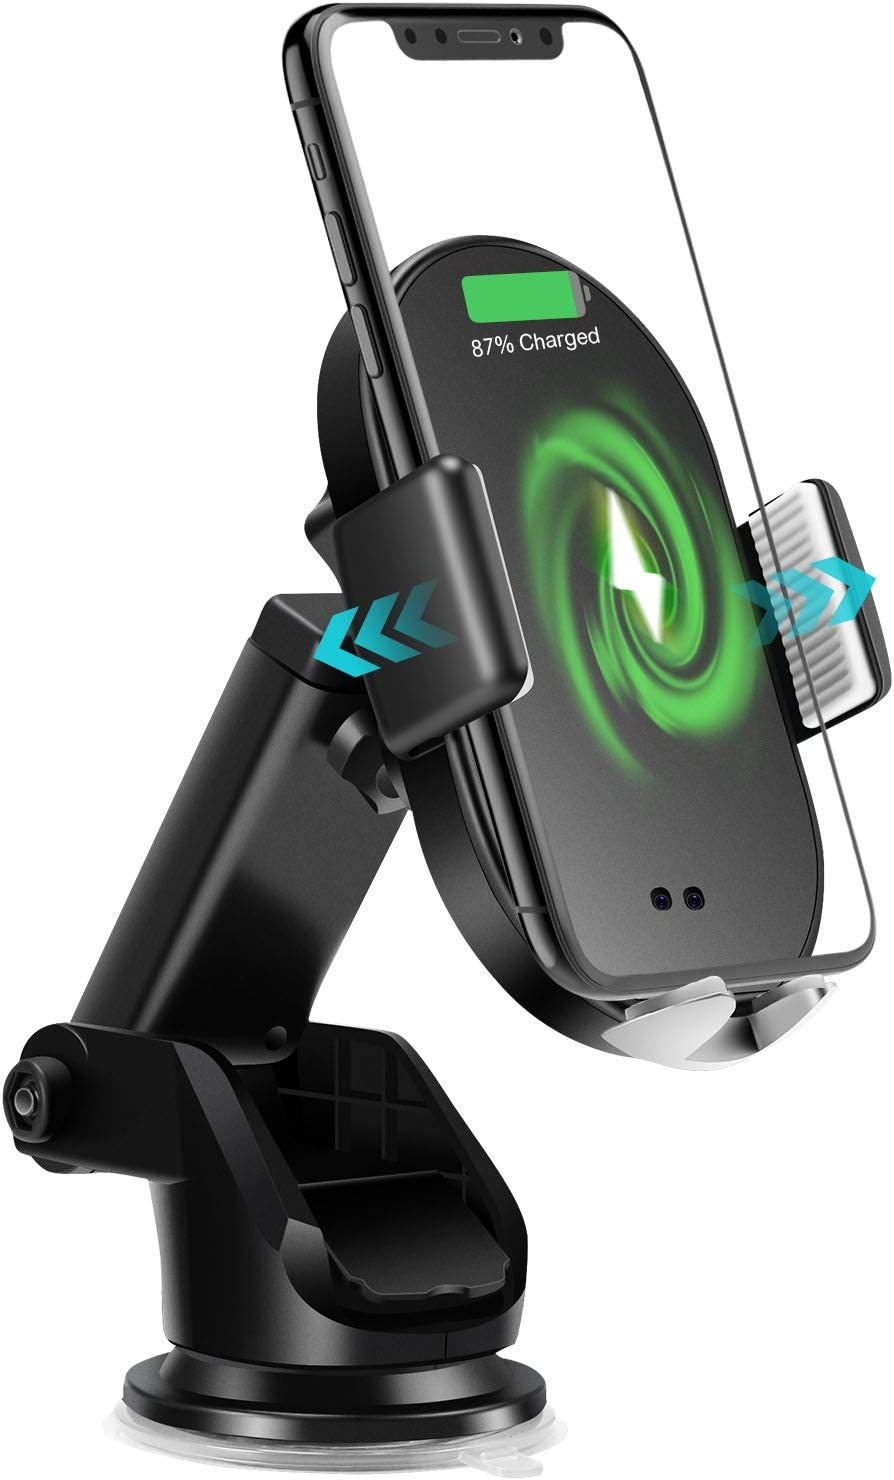 Samsung Galaxy All Smartphones JUMON TIME Wireless Car Charger Auto Clamping Car Phone Mount Dashboard Air Vent Qi Fast Charging Car Phone Holder for iPhone